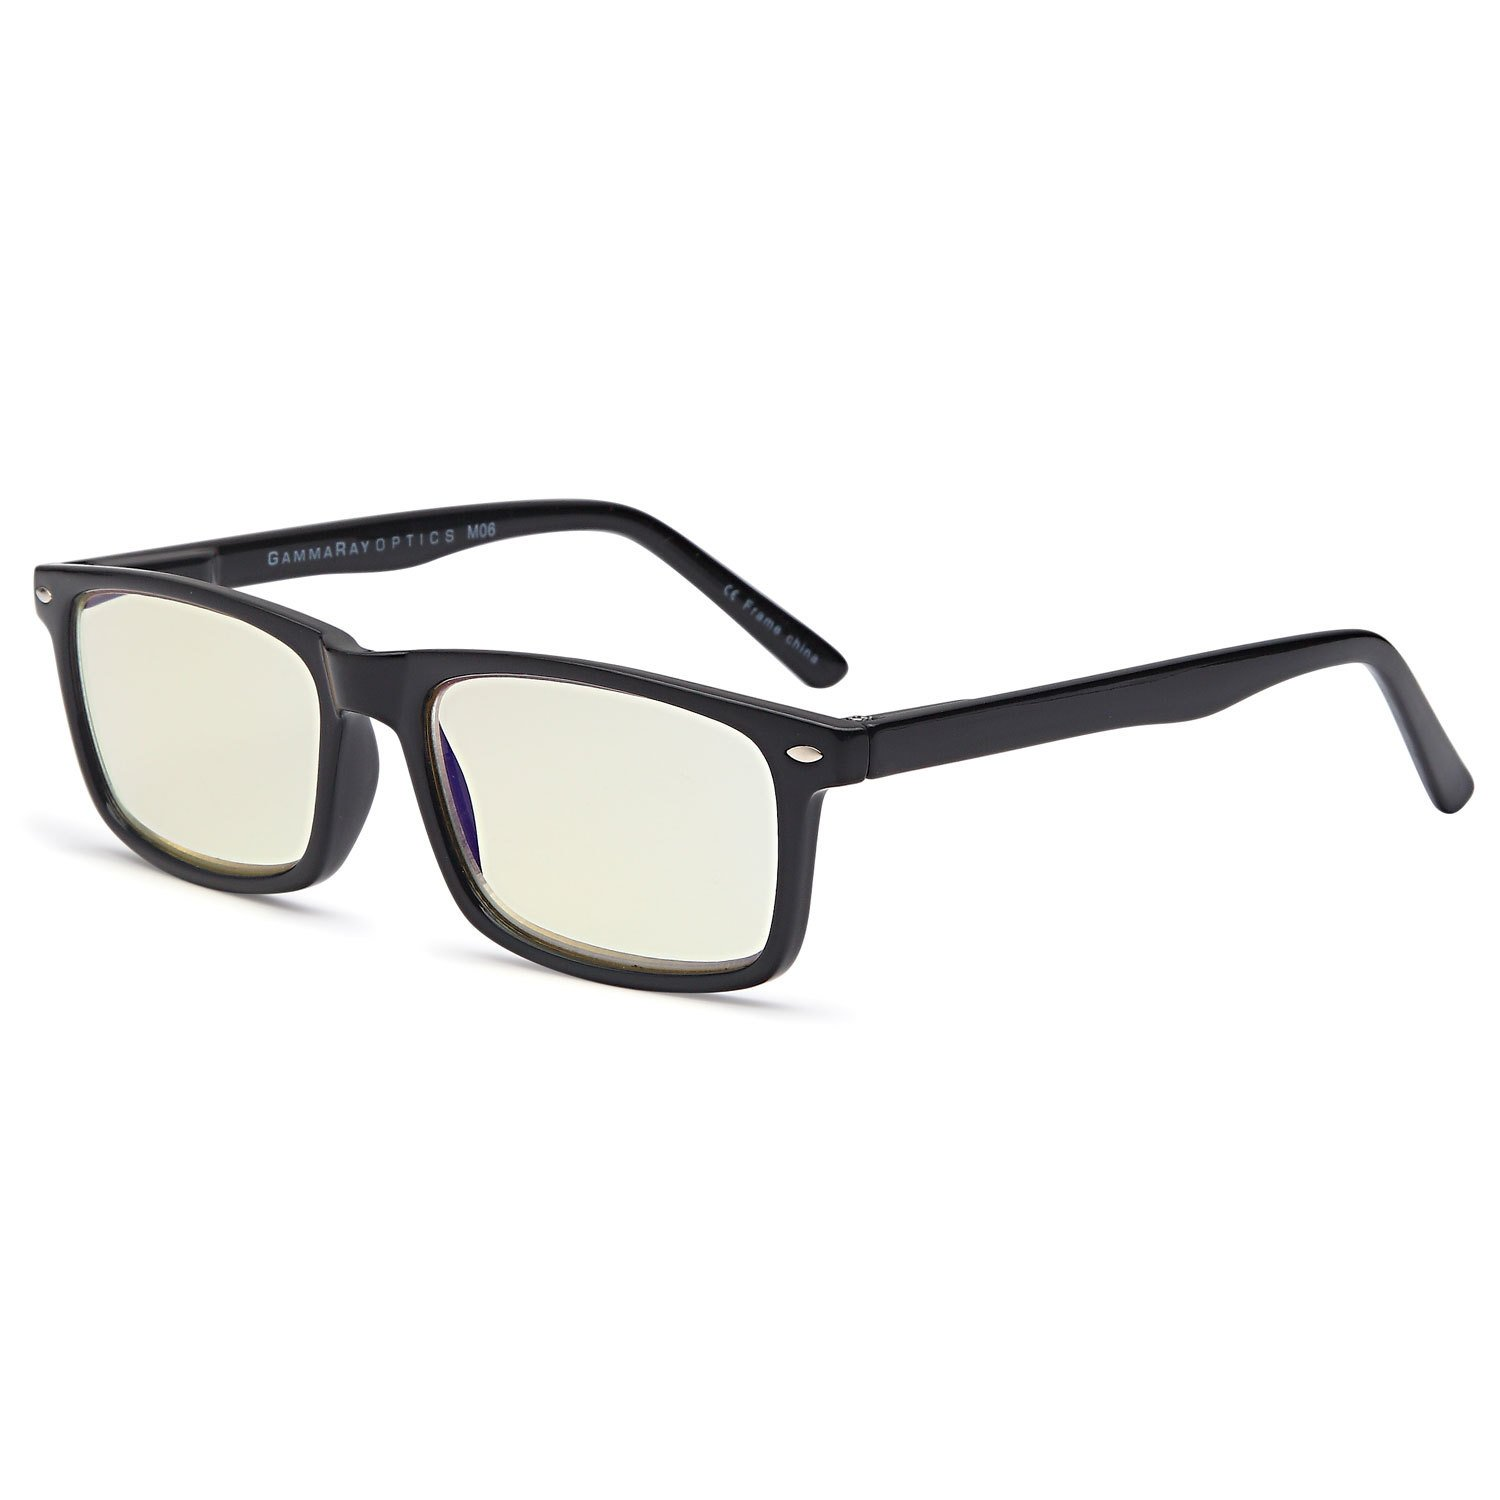 GAMMA RAY 899 Computer Readers UV Protection, Anti Glare, Anti Blue Light Eyeglasses, Spring Hinge Video Gaming Frames - With 1.25x Magnification Gamma Ray Optics